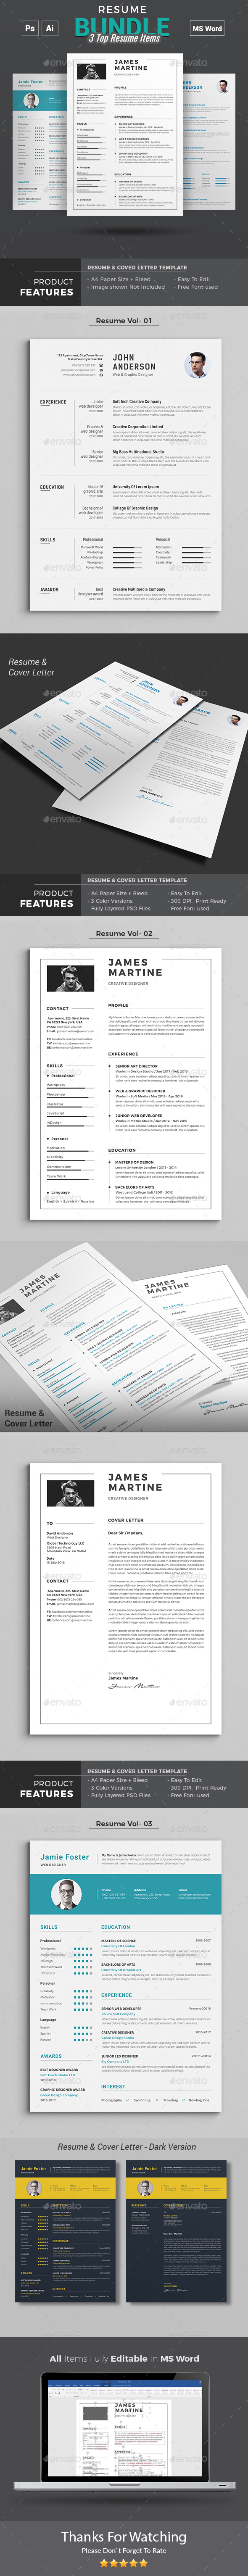 GraphicRiver Resume Word Bundle 20972455